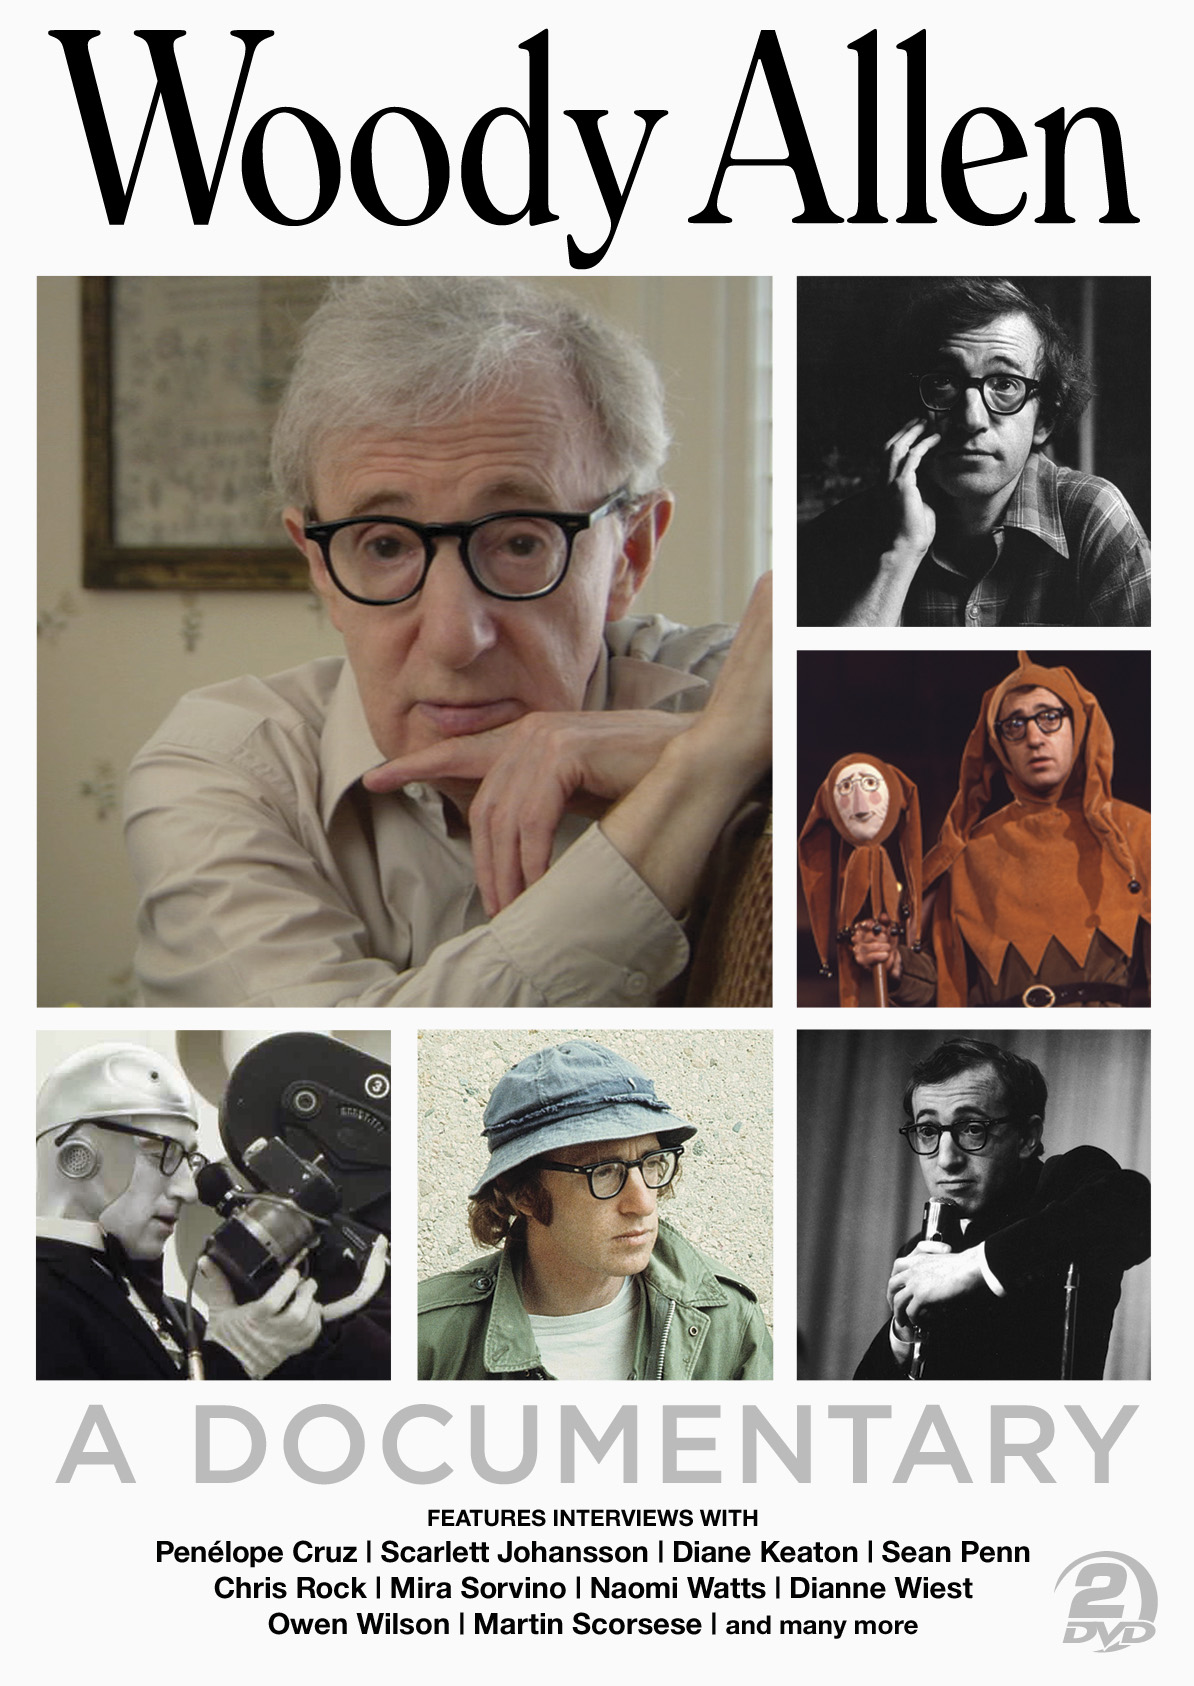 an introduction to the life and career of woody allen Heywood woody allen is an american director, writer, actor, and comedian  whose career  in 2011, pbs televised the film biography woody allen: a  documentary on the american masters tv series  burrows then wrote allen  letters of introduction to sid caesar, phil silvers, and peter lind hayes, who  immediately sent.